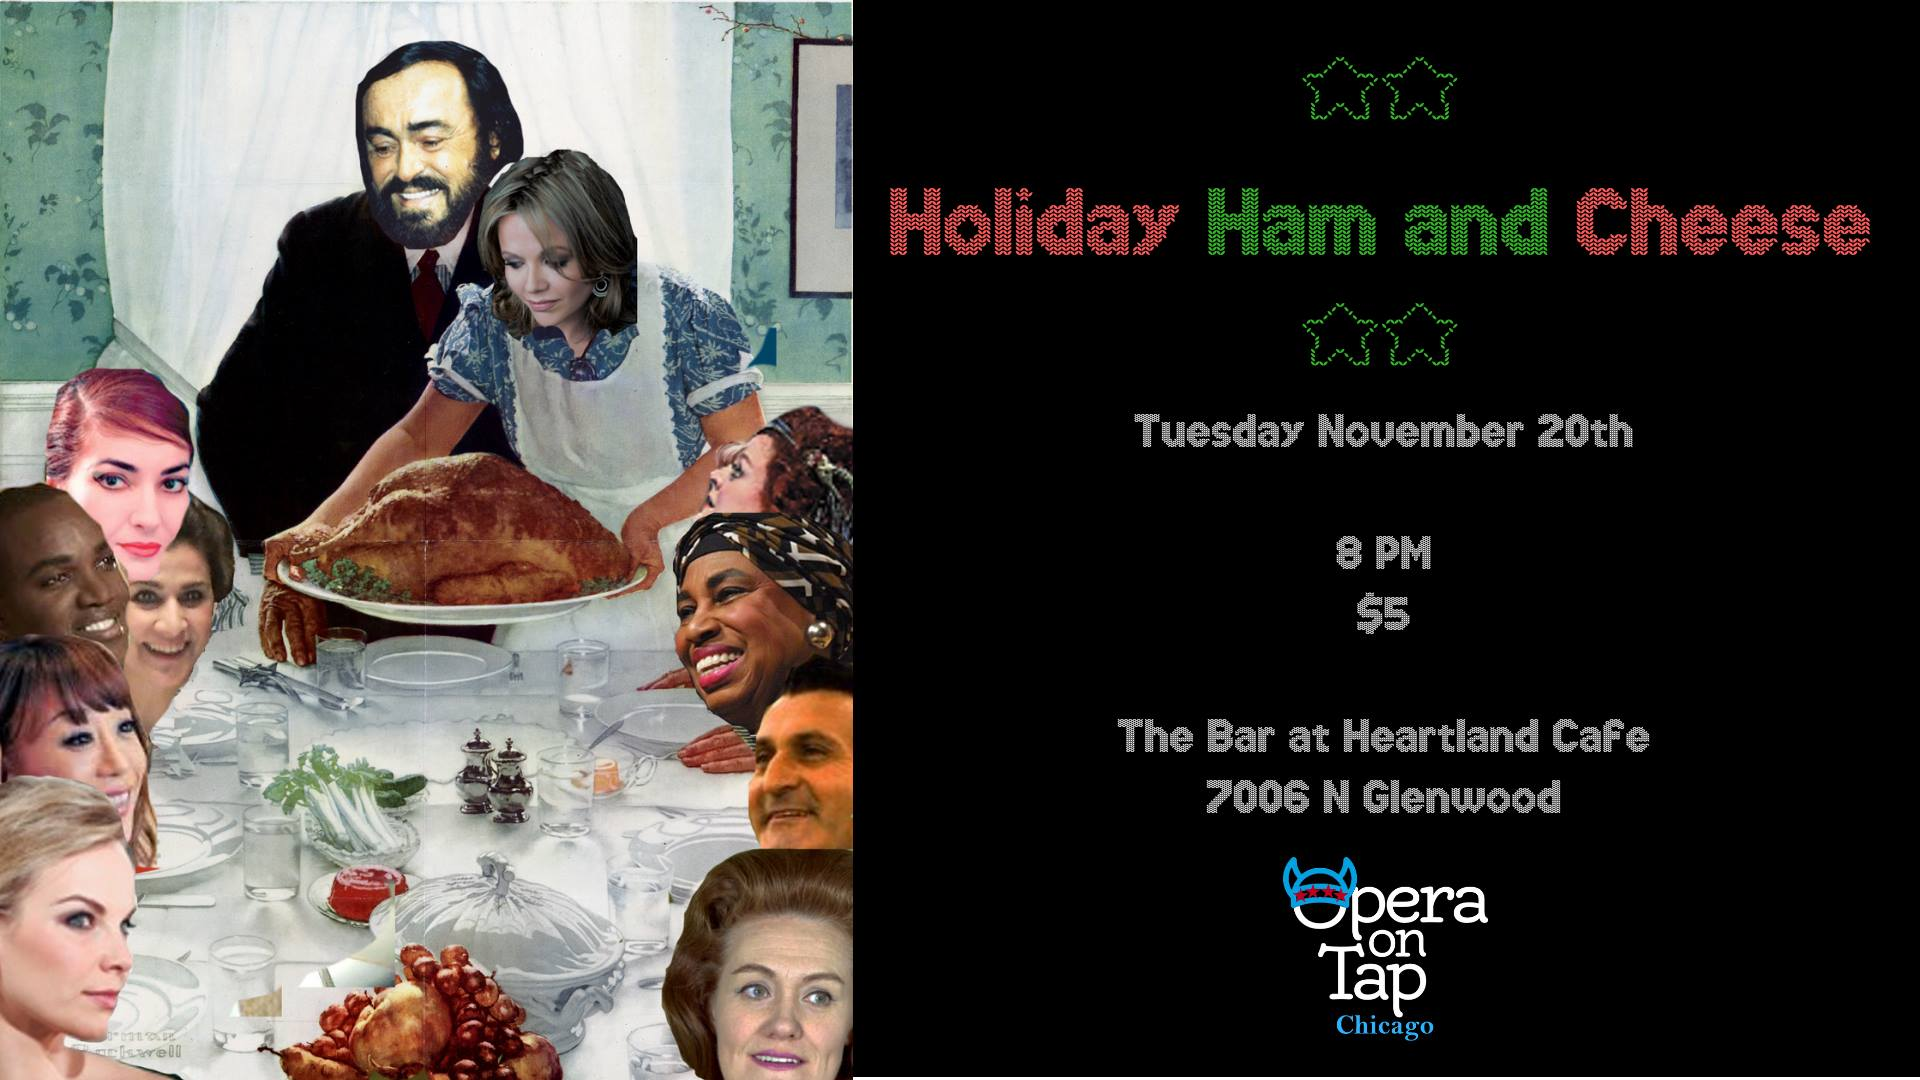 opera on tap chicago holiday